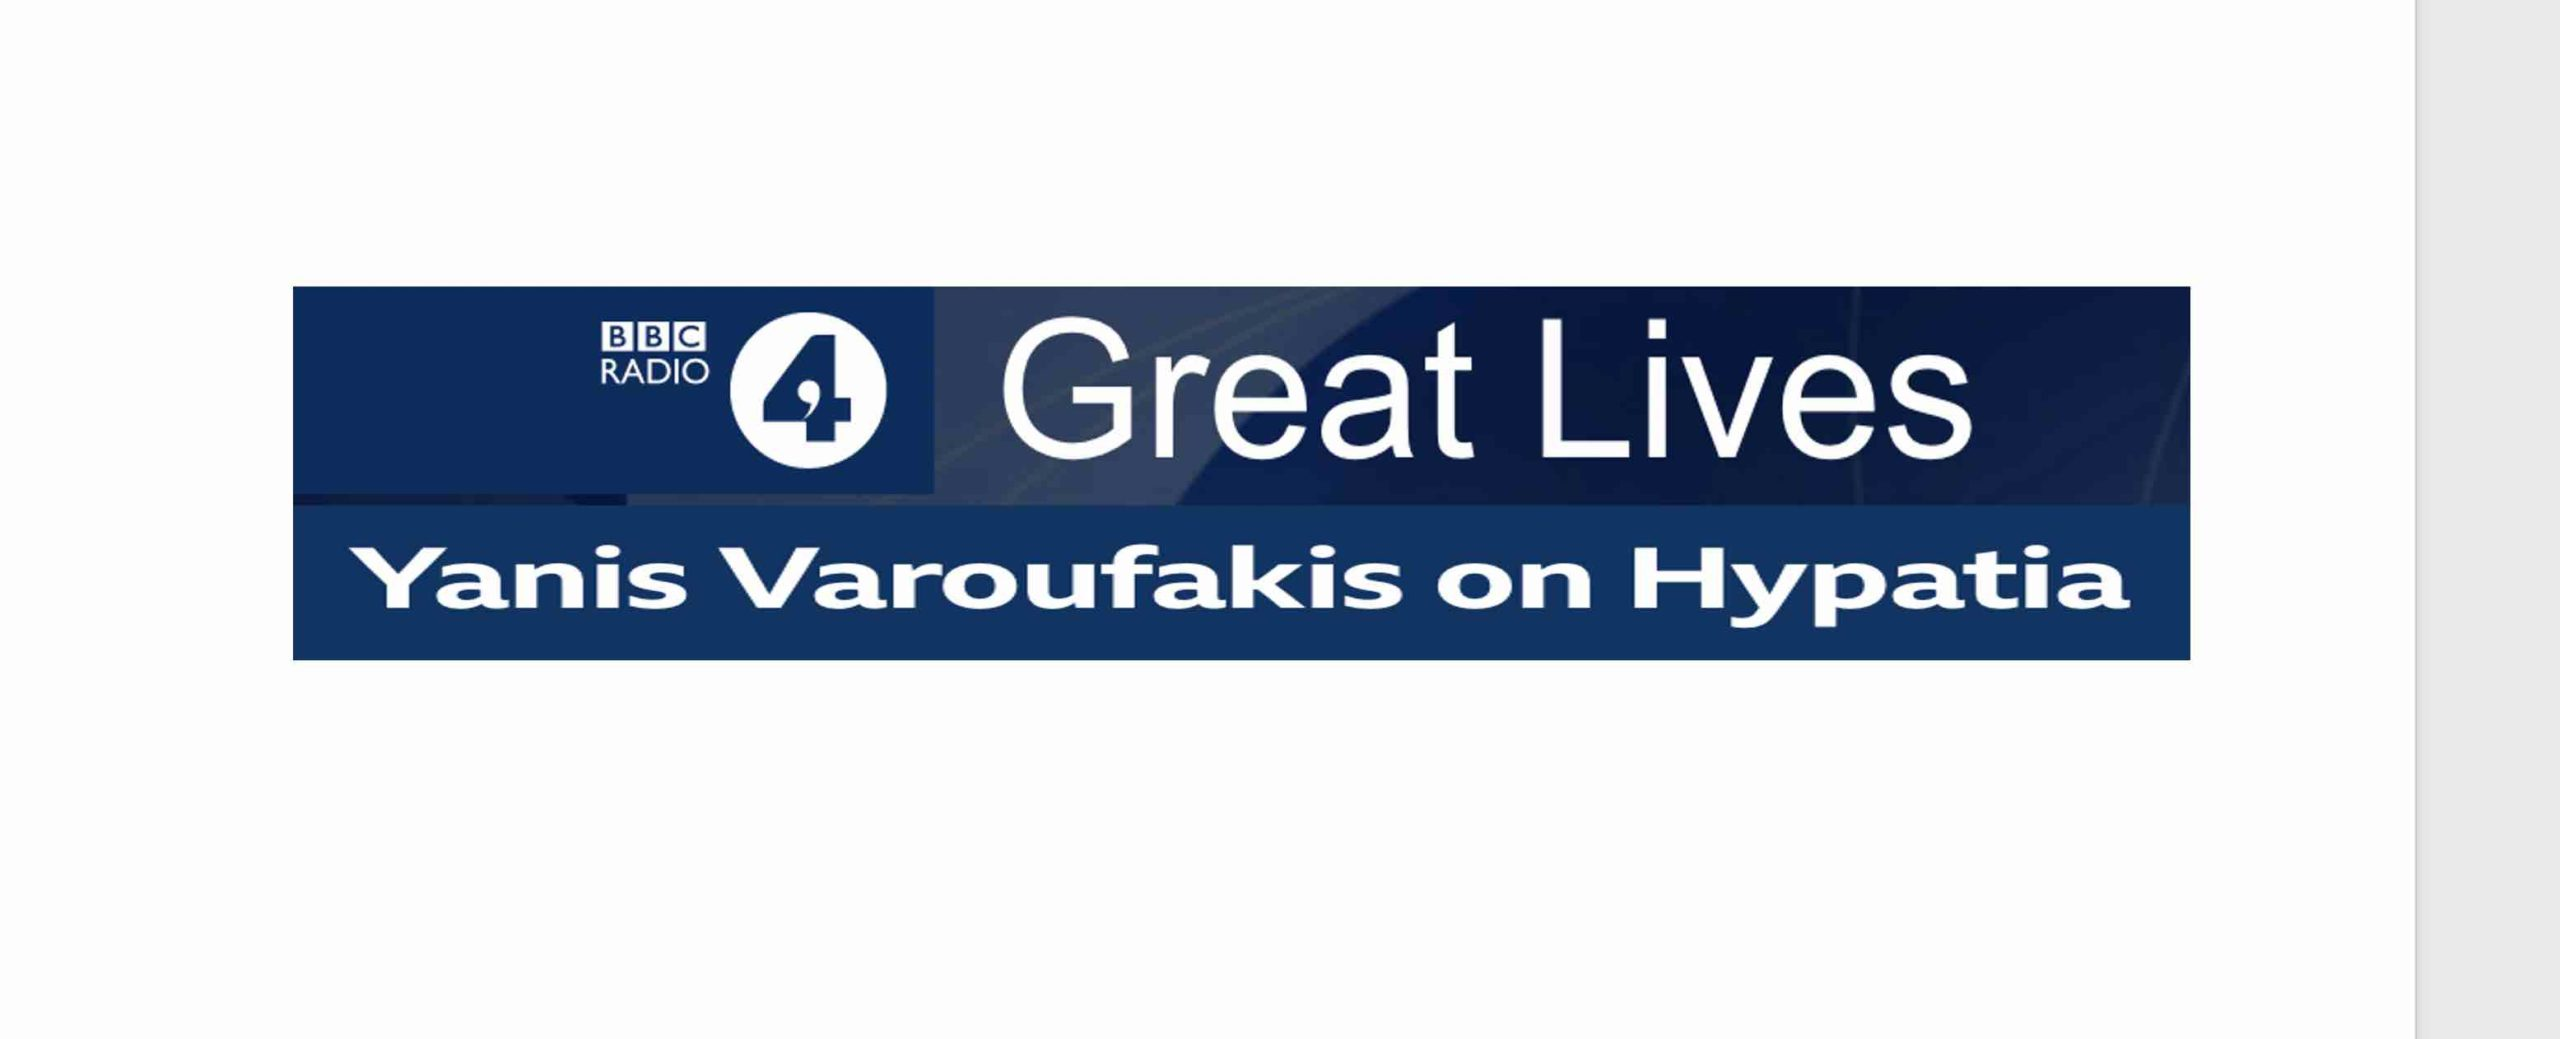 Hypatia: my choice of a great life to re-visit and celebrate – on BBC Radio 4's Great Lives